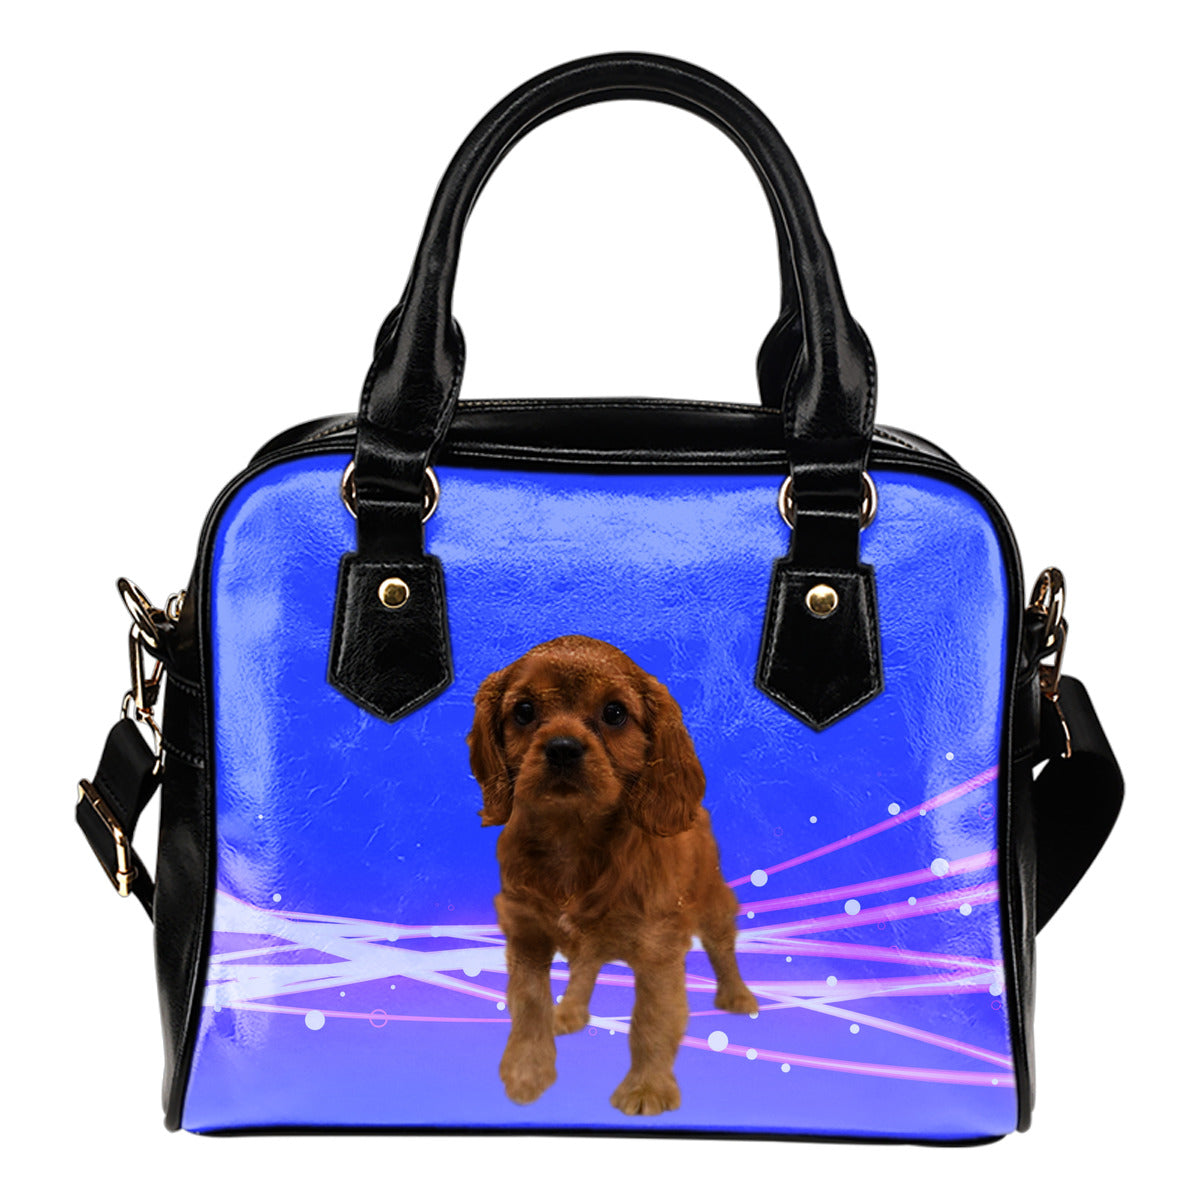 Cavalier King Charles Spaniel Shoulder Bag - Ruby Puppy